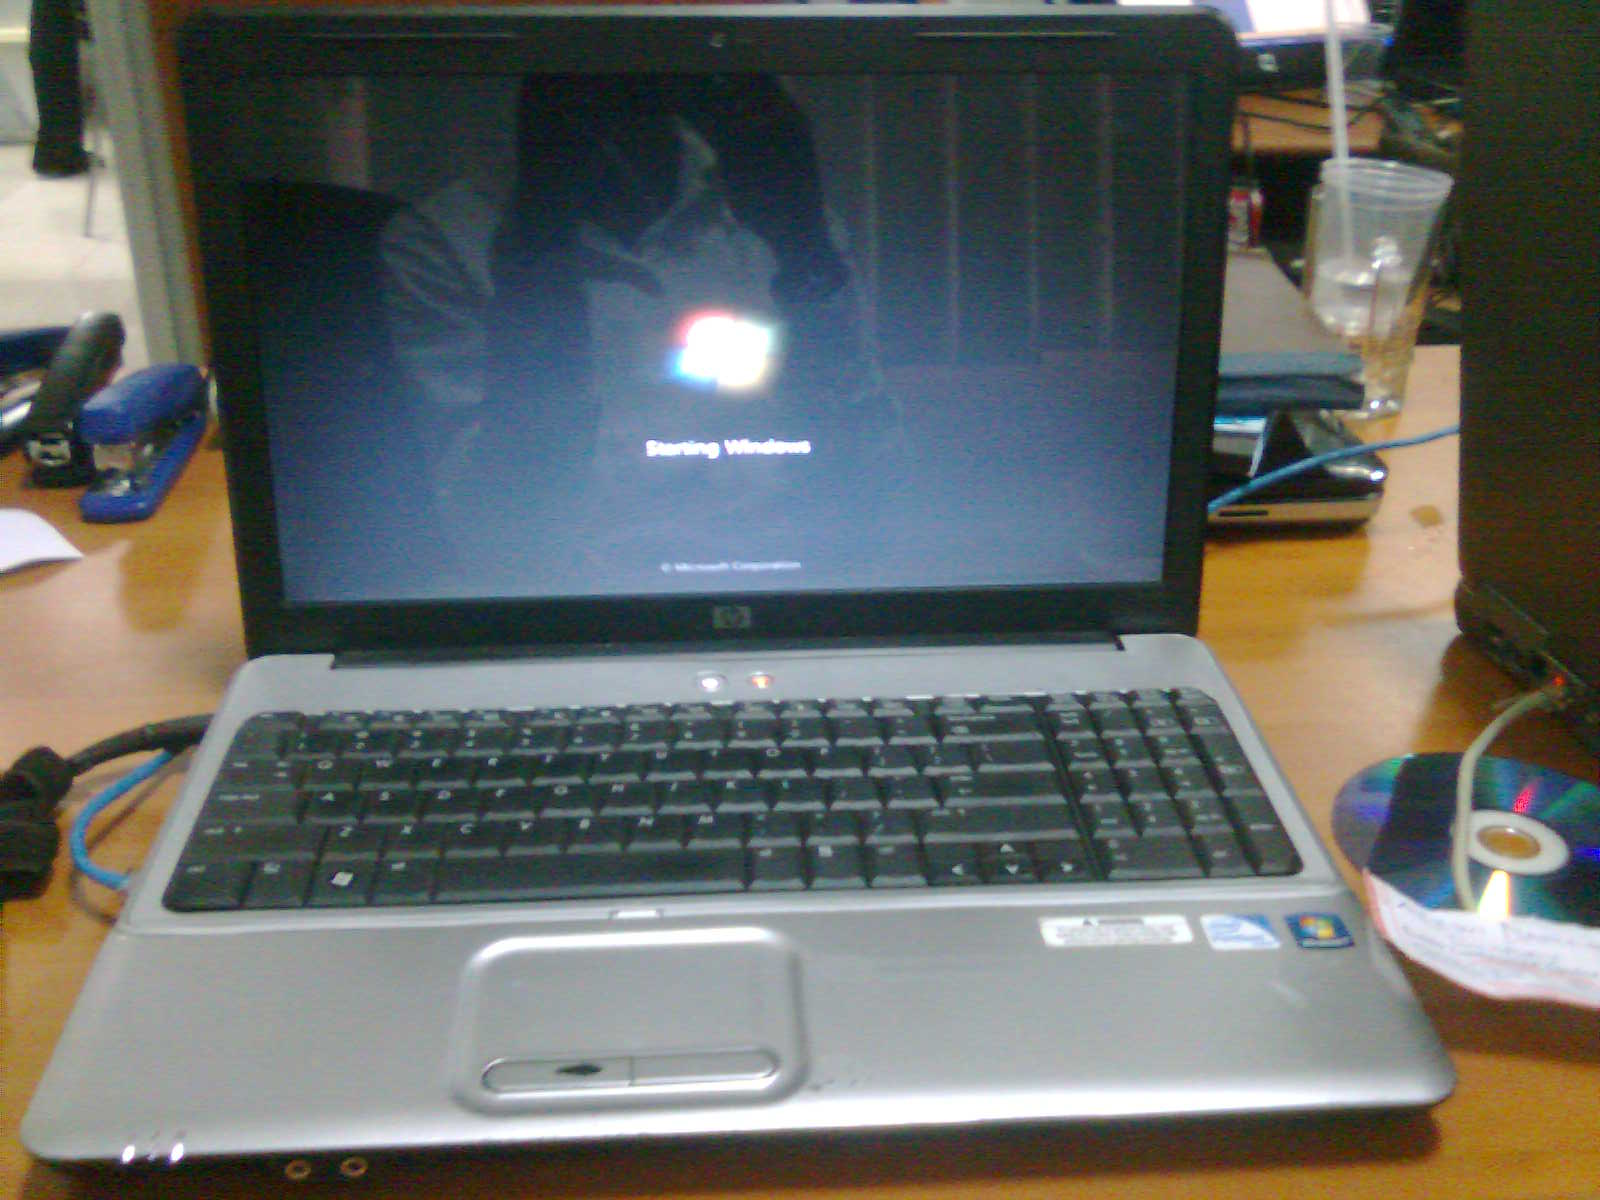 HP G60-535DX Notebook Synaptics Touchpad Driver Windows XP